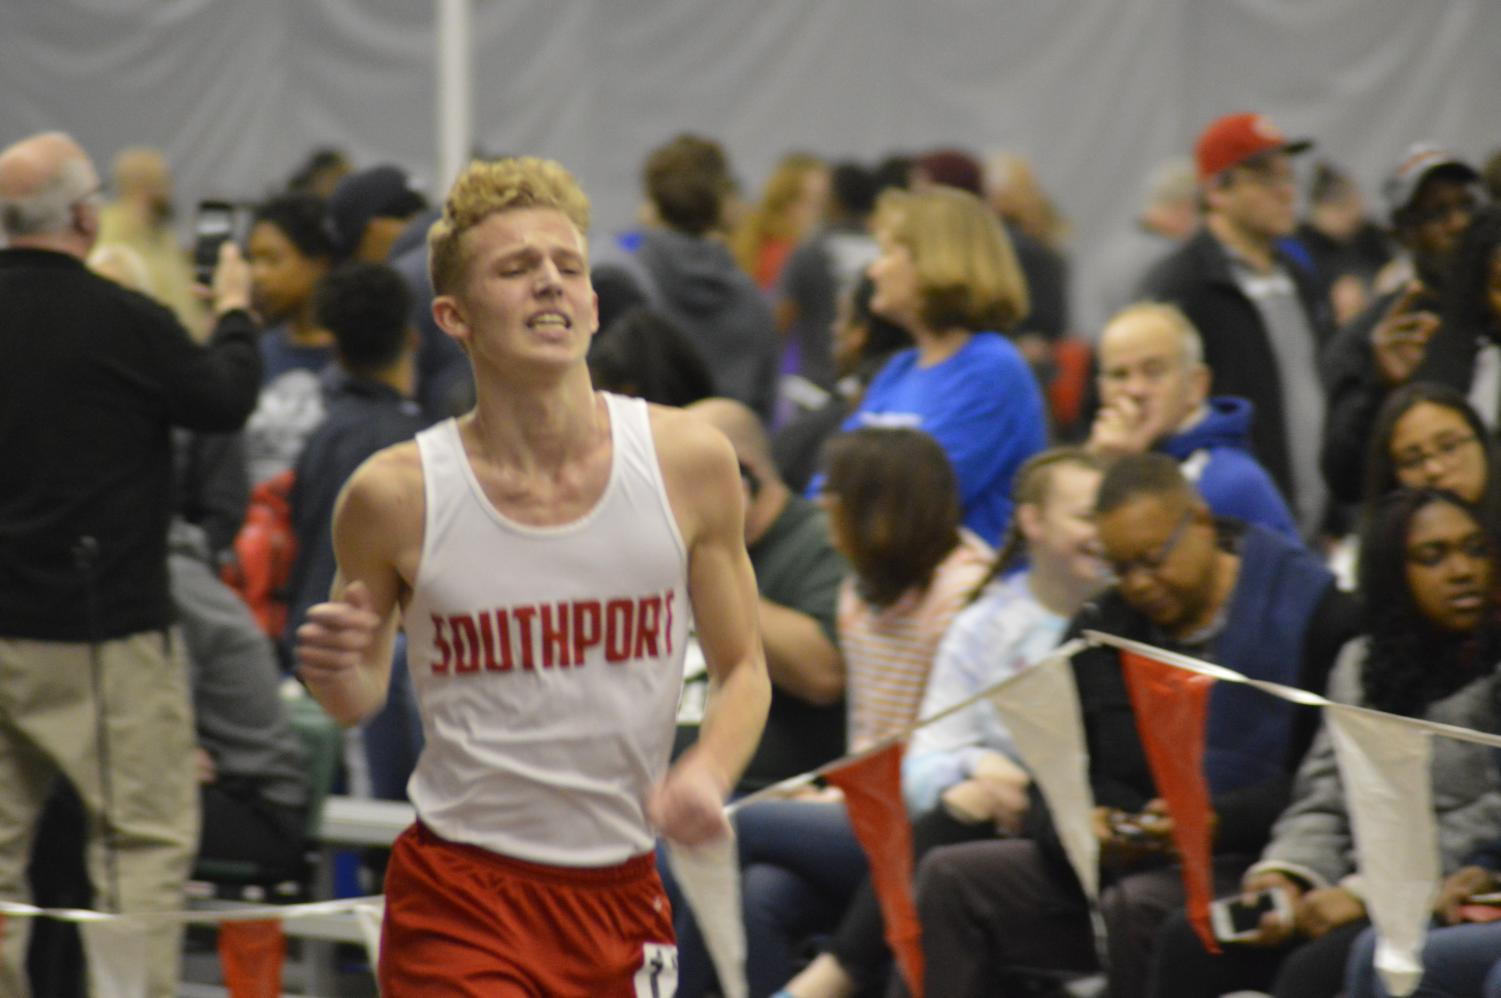 Junior Justin Polly finishes his second to last lap of the 3200-meter run at the Lawrence Central Invite on March 8.